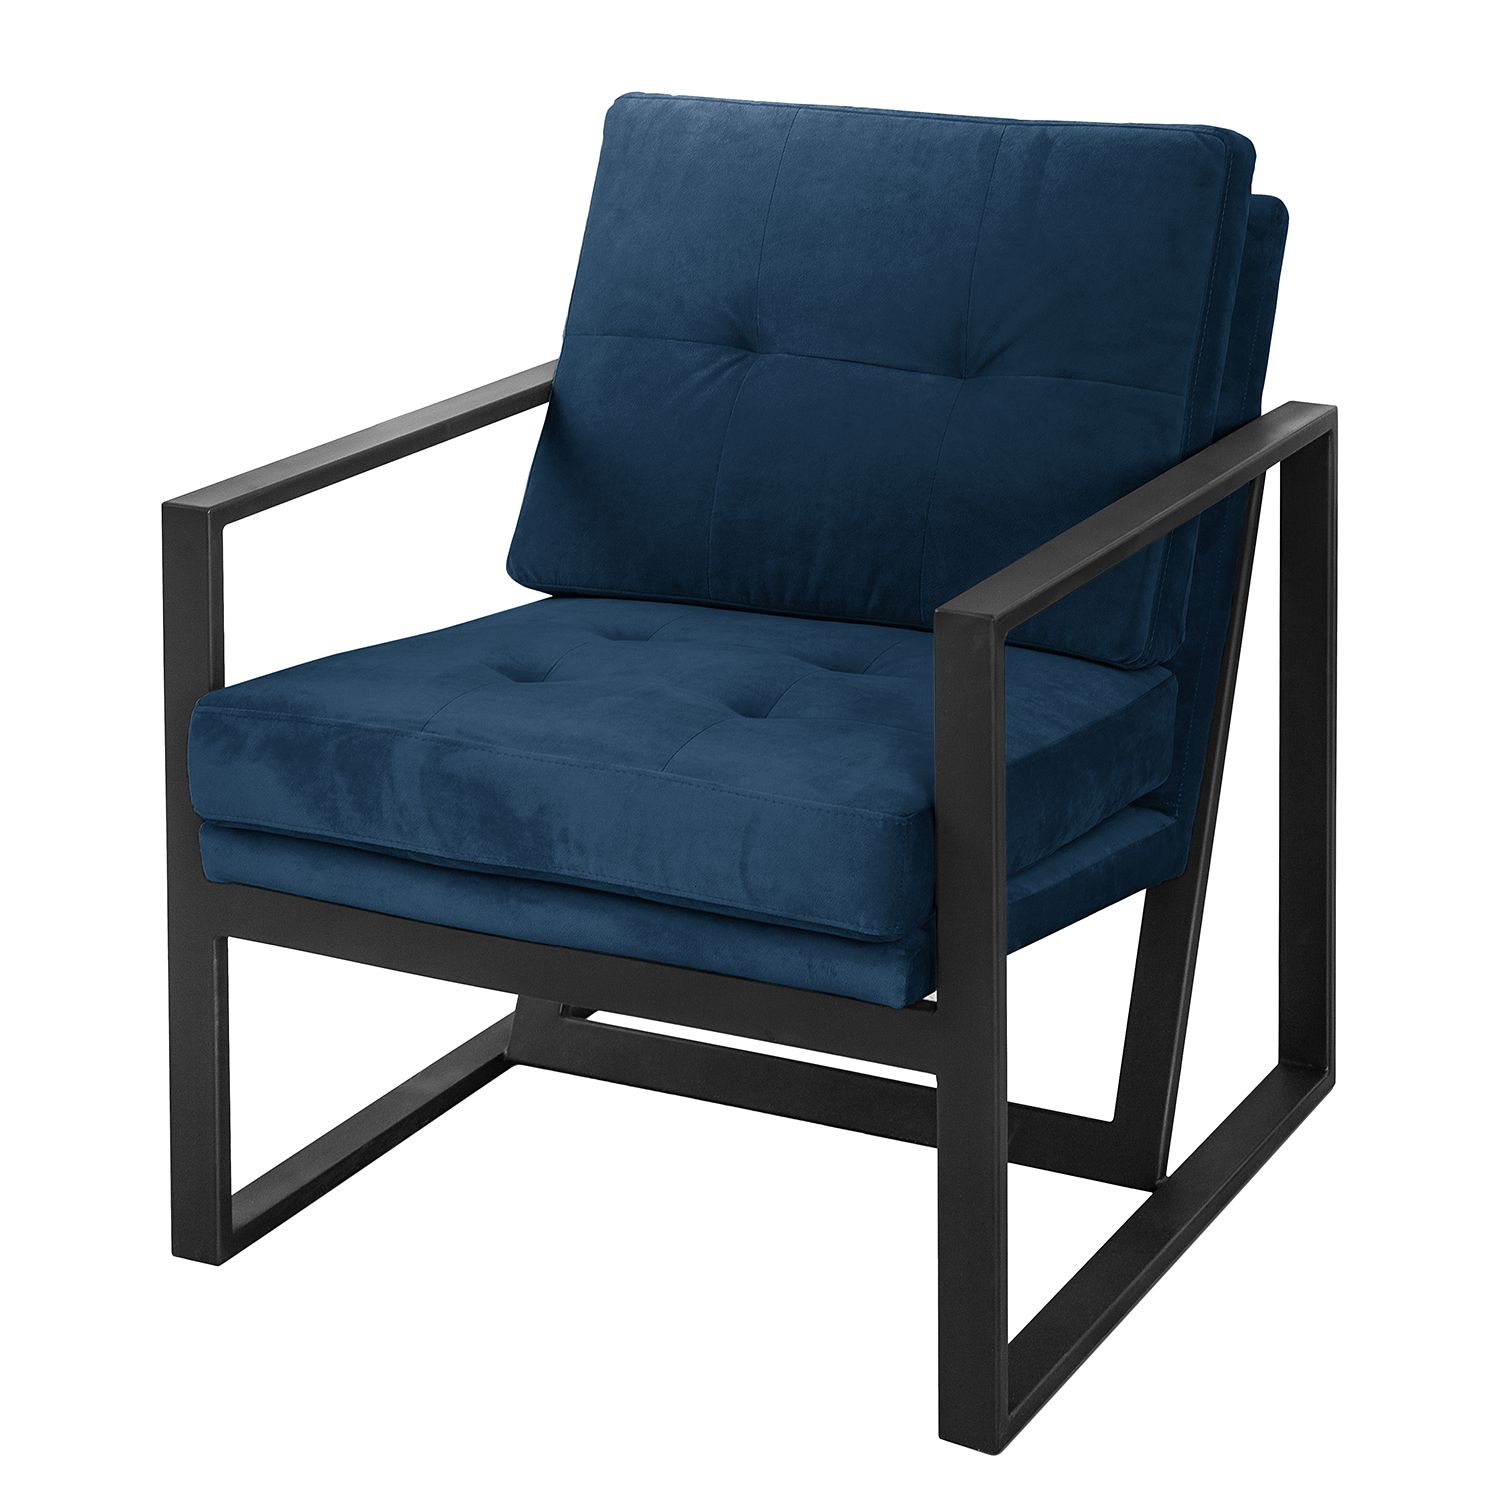 fauteuil brock i velours bleu marine ars manufacti. Black Bedroom Furniture Sets. Home Design Ideas